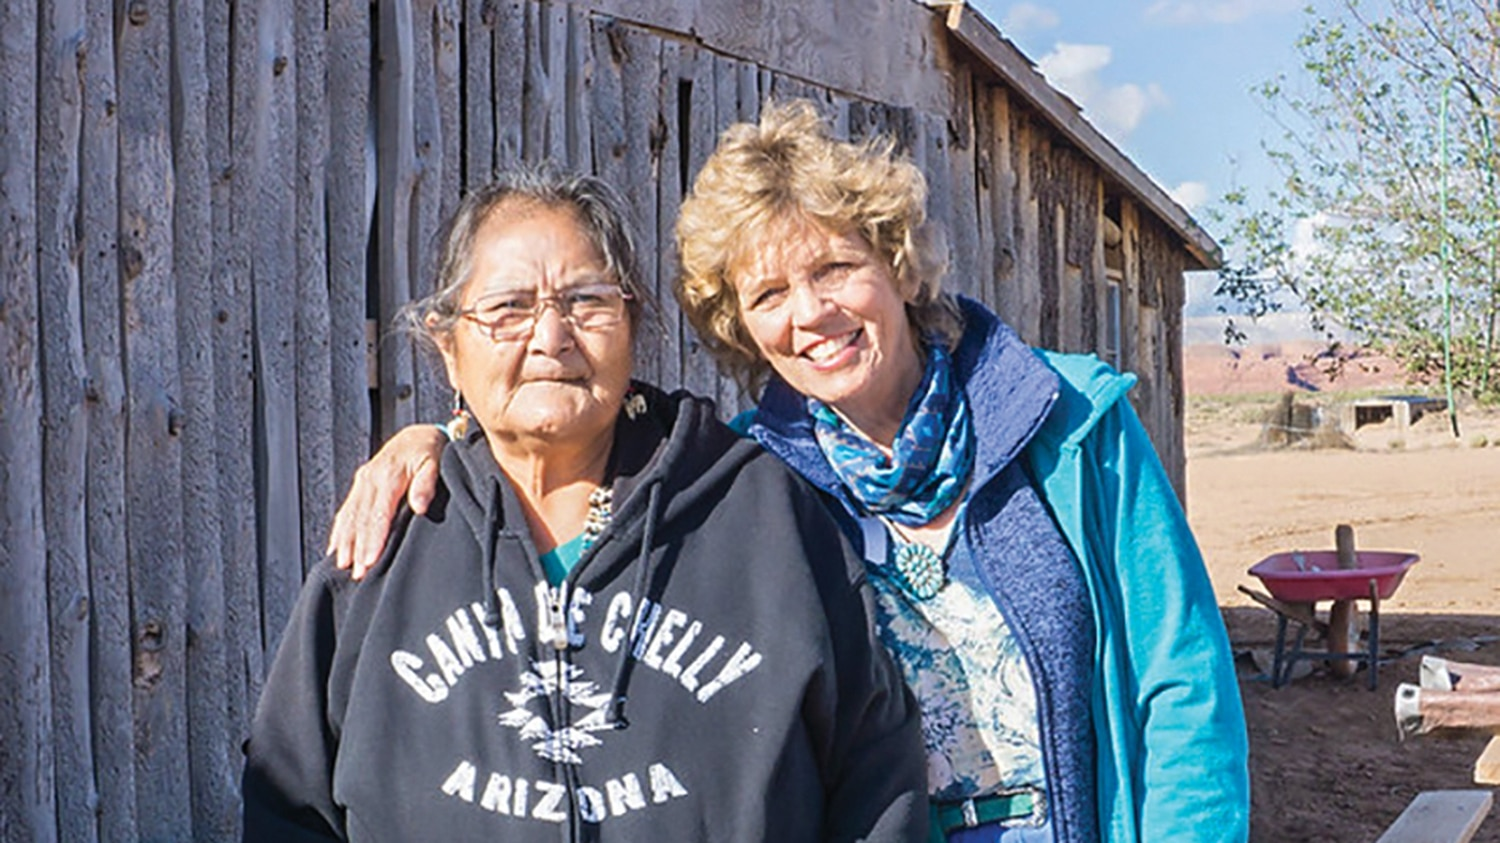 Many Farms coordinator Darlene Slivers and ANE founder and director Linda Myers.